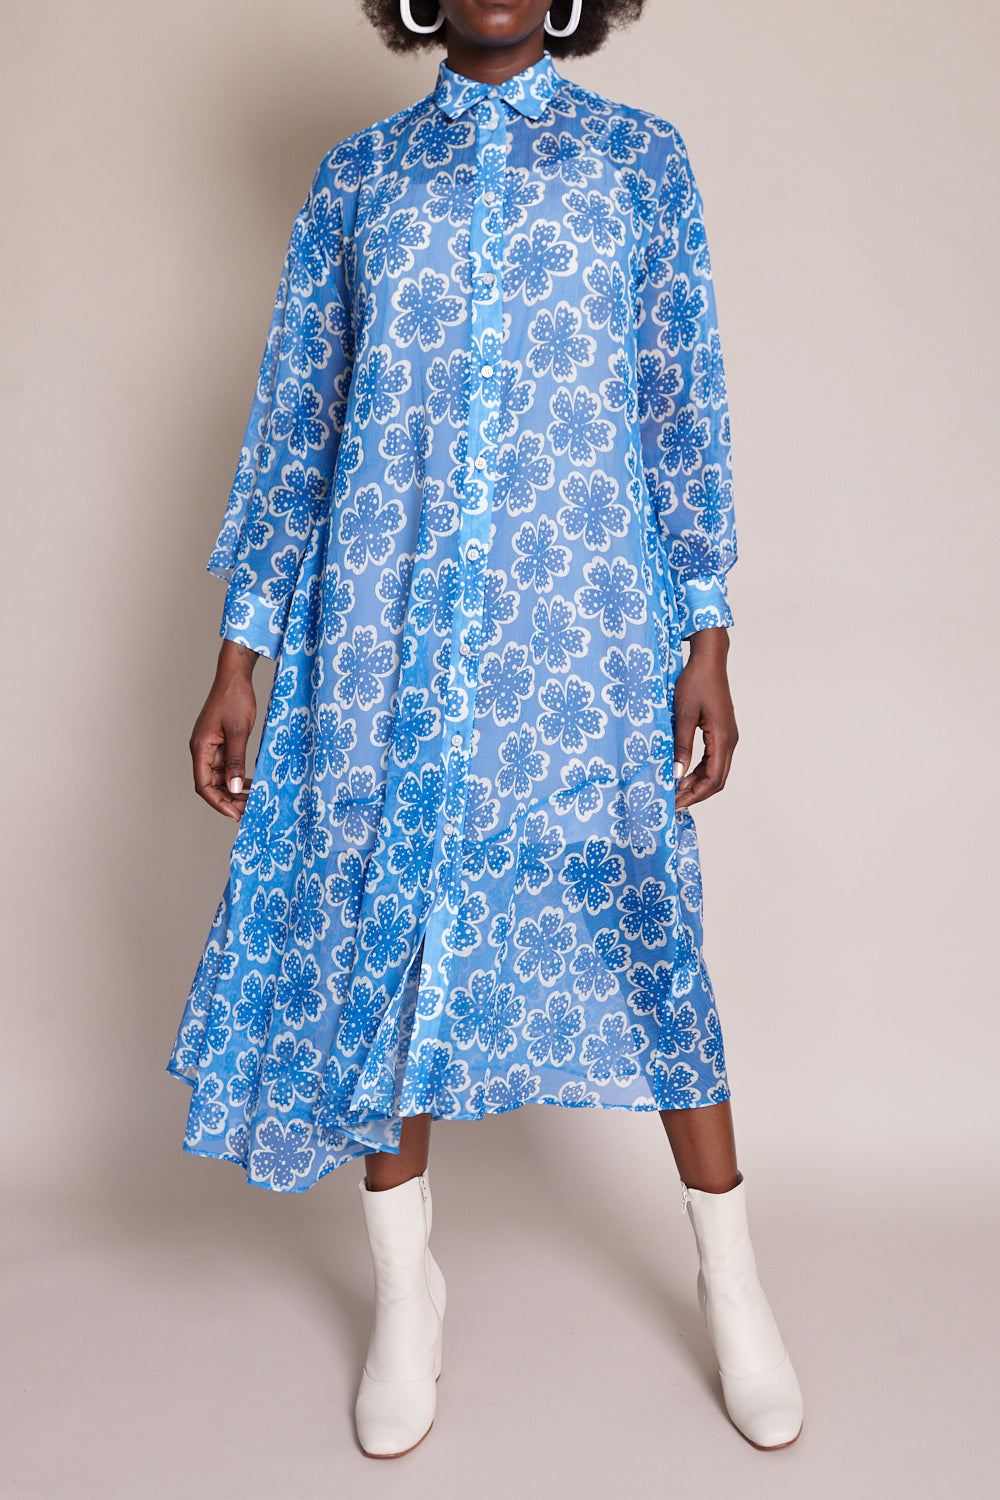 Rachel Comey Braden Dress in Blue - Vert & Vogue